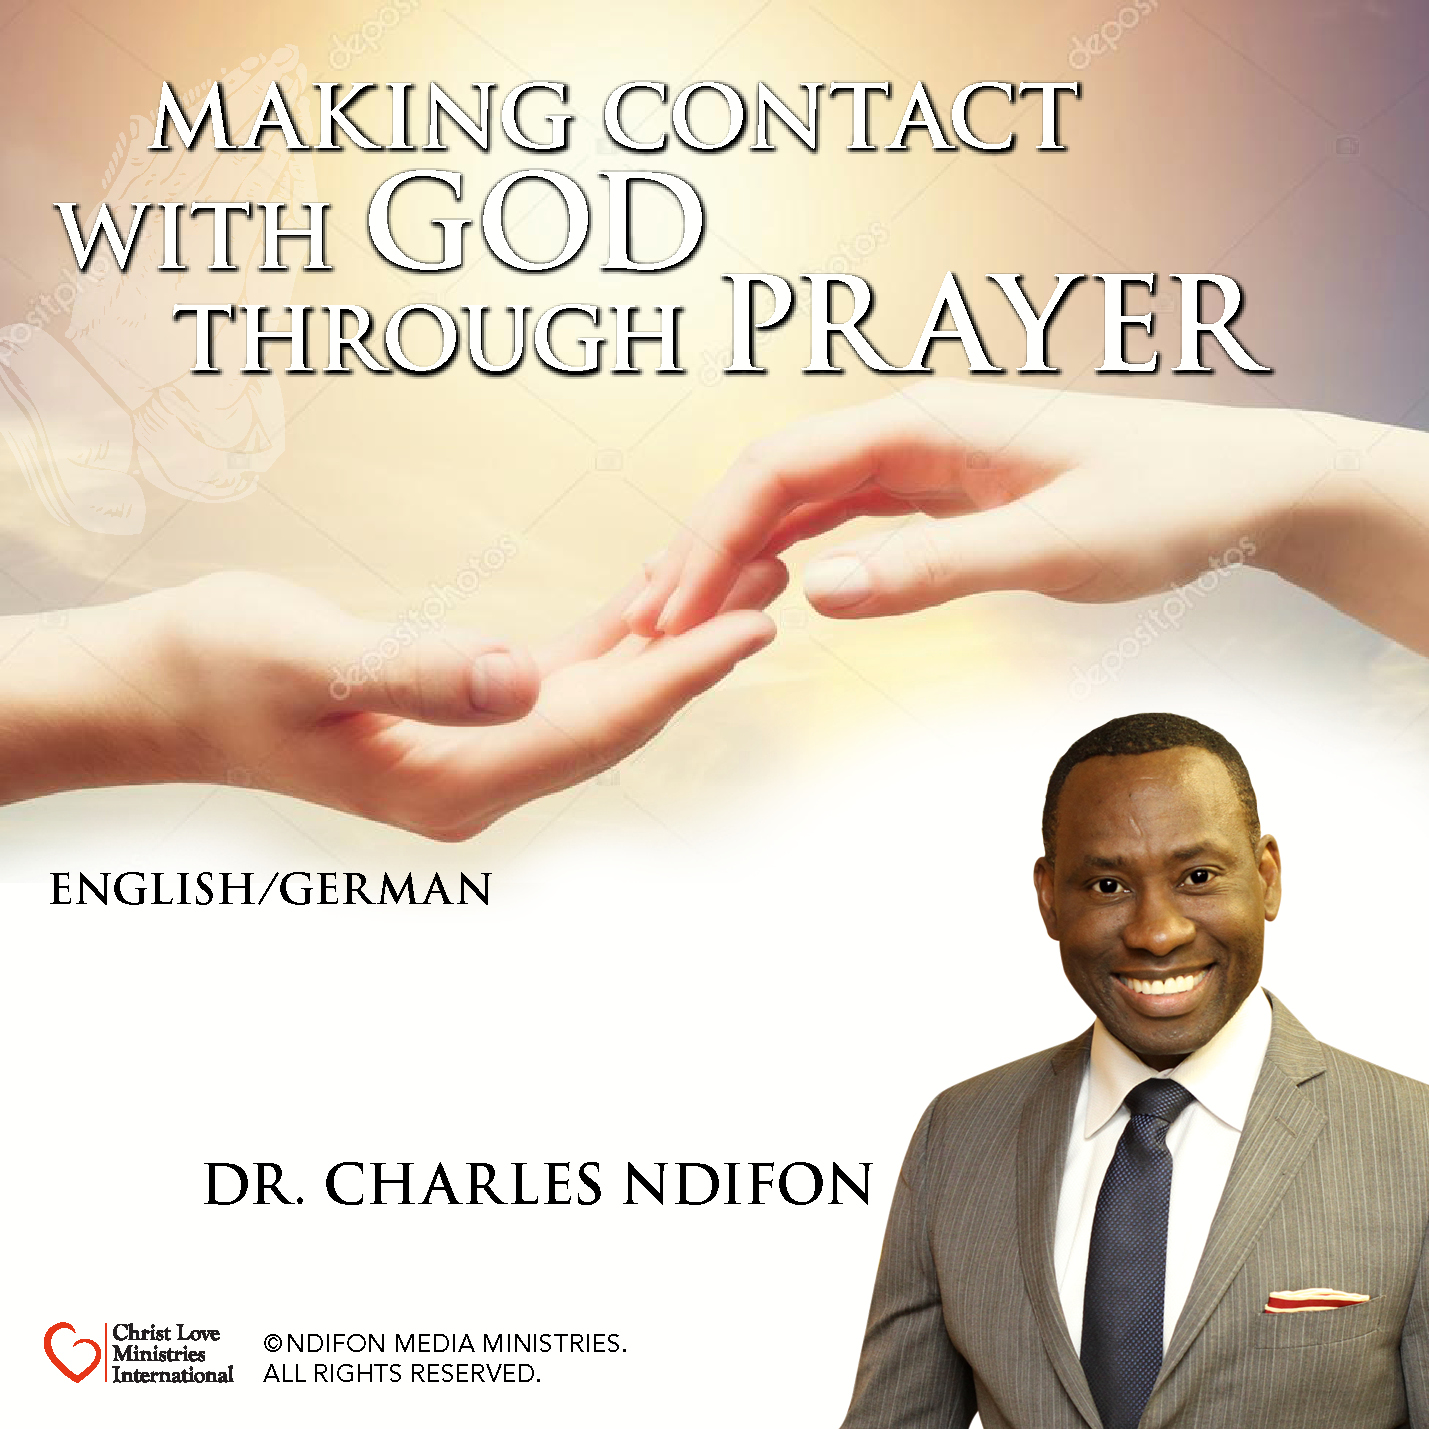 Making Contact with God through Prayer